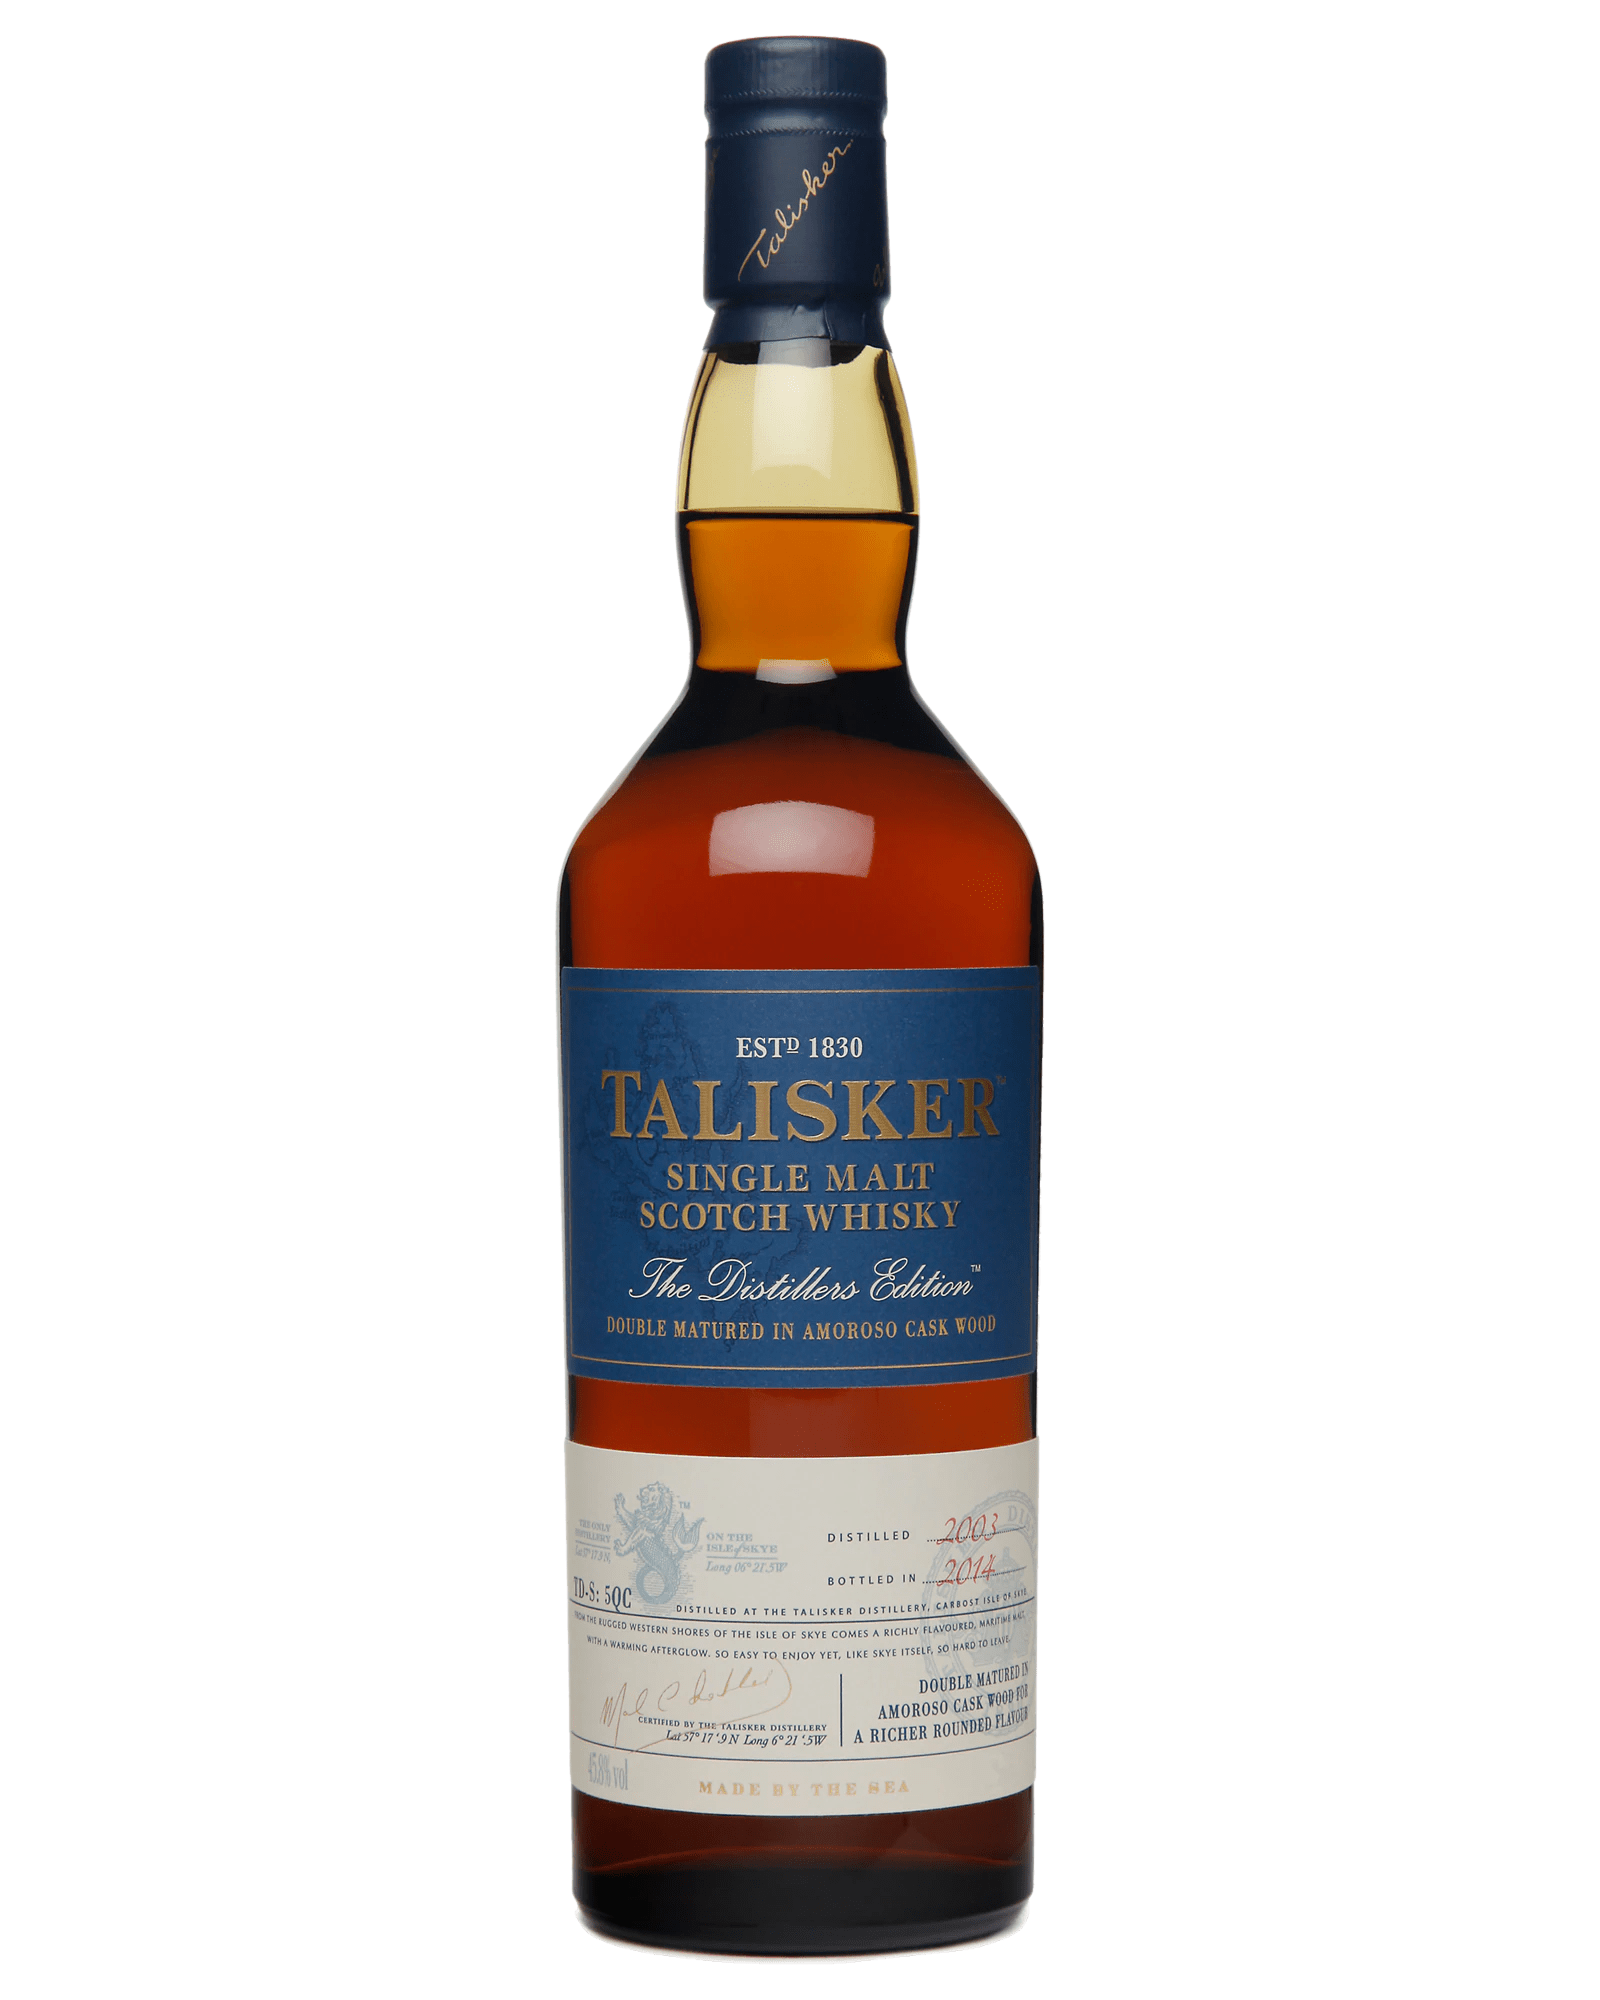 Talisker Distillers Edition Double Matured Single Malt Scotch Whisky (700ml)